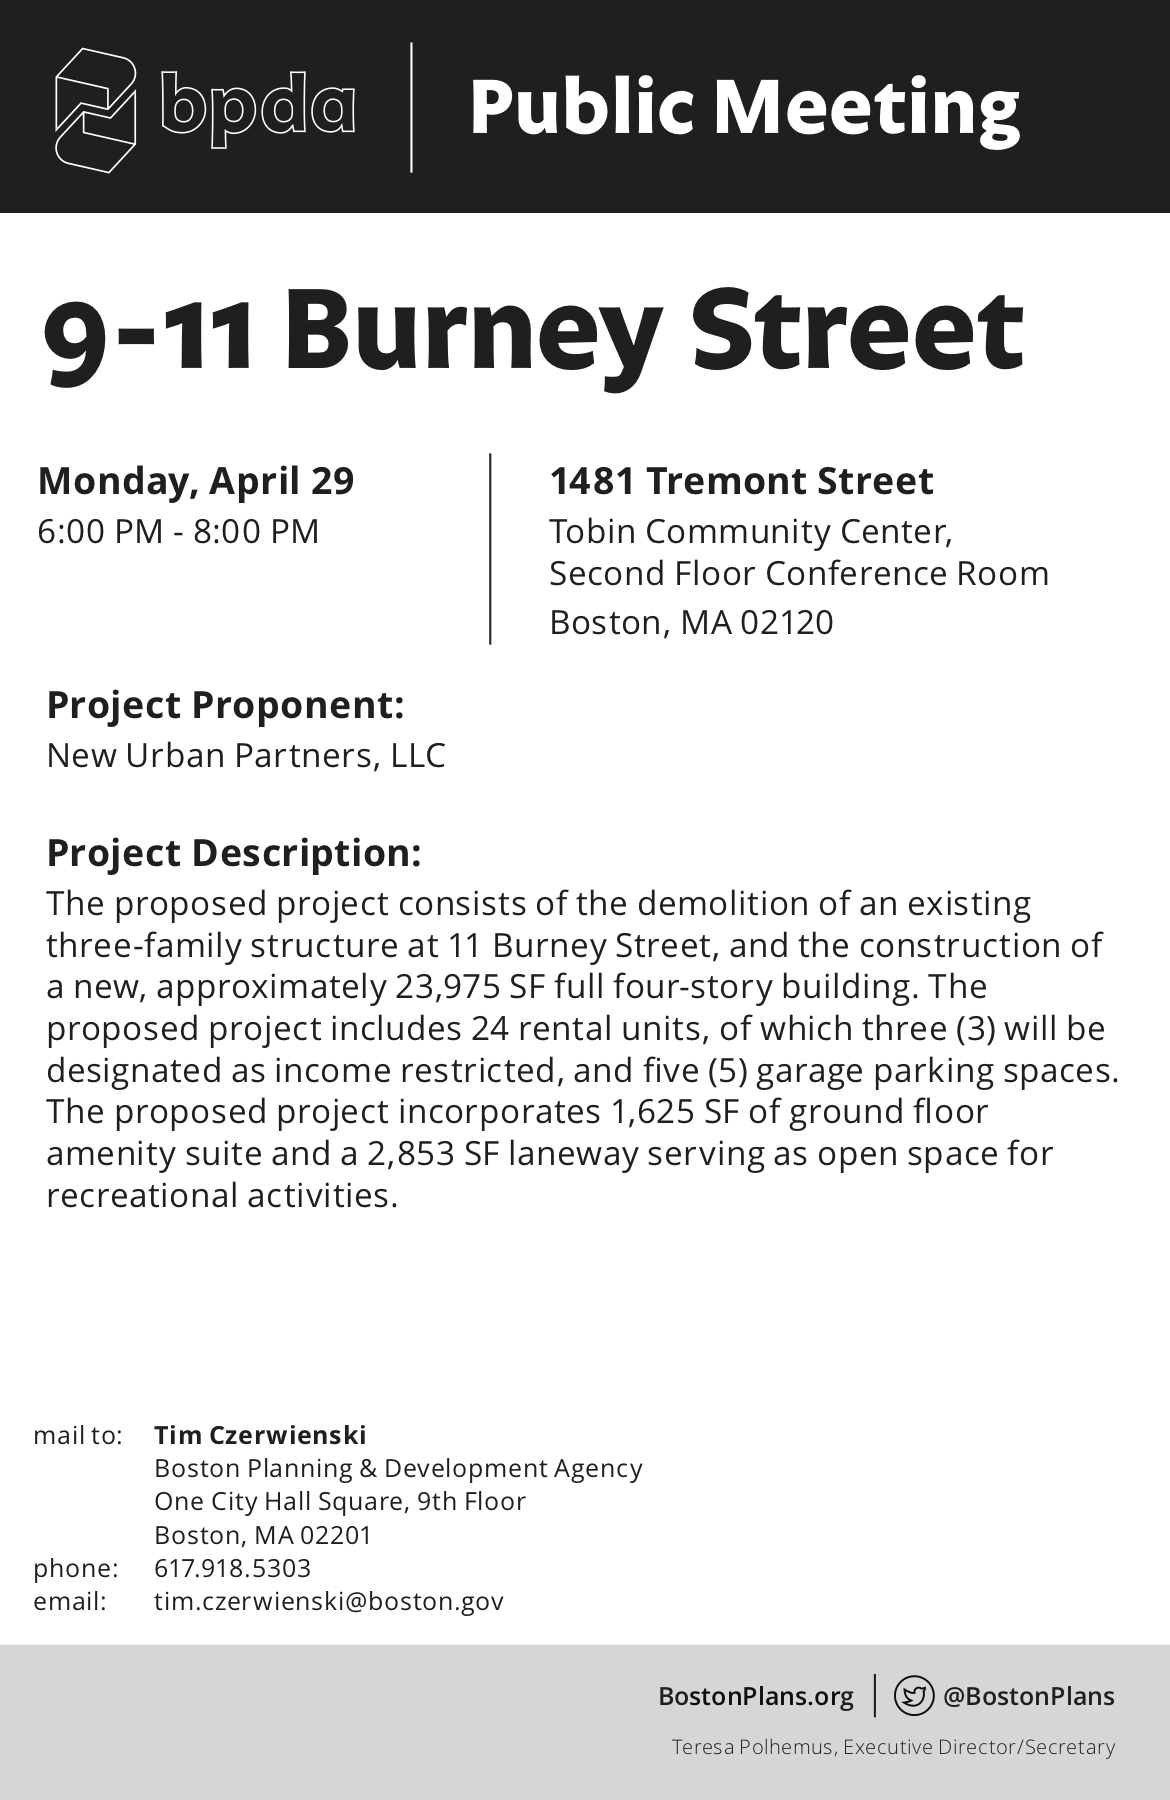 20190429_MeetingAd_9-11Burney.png